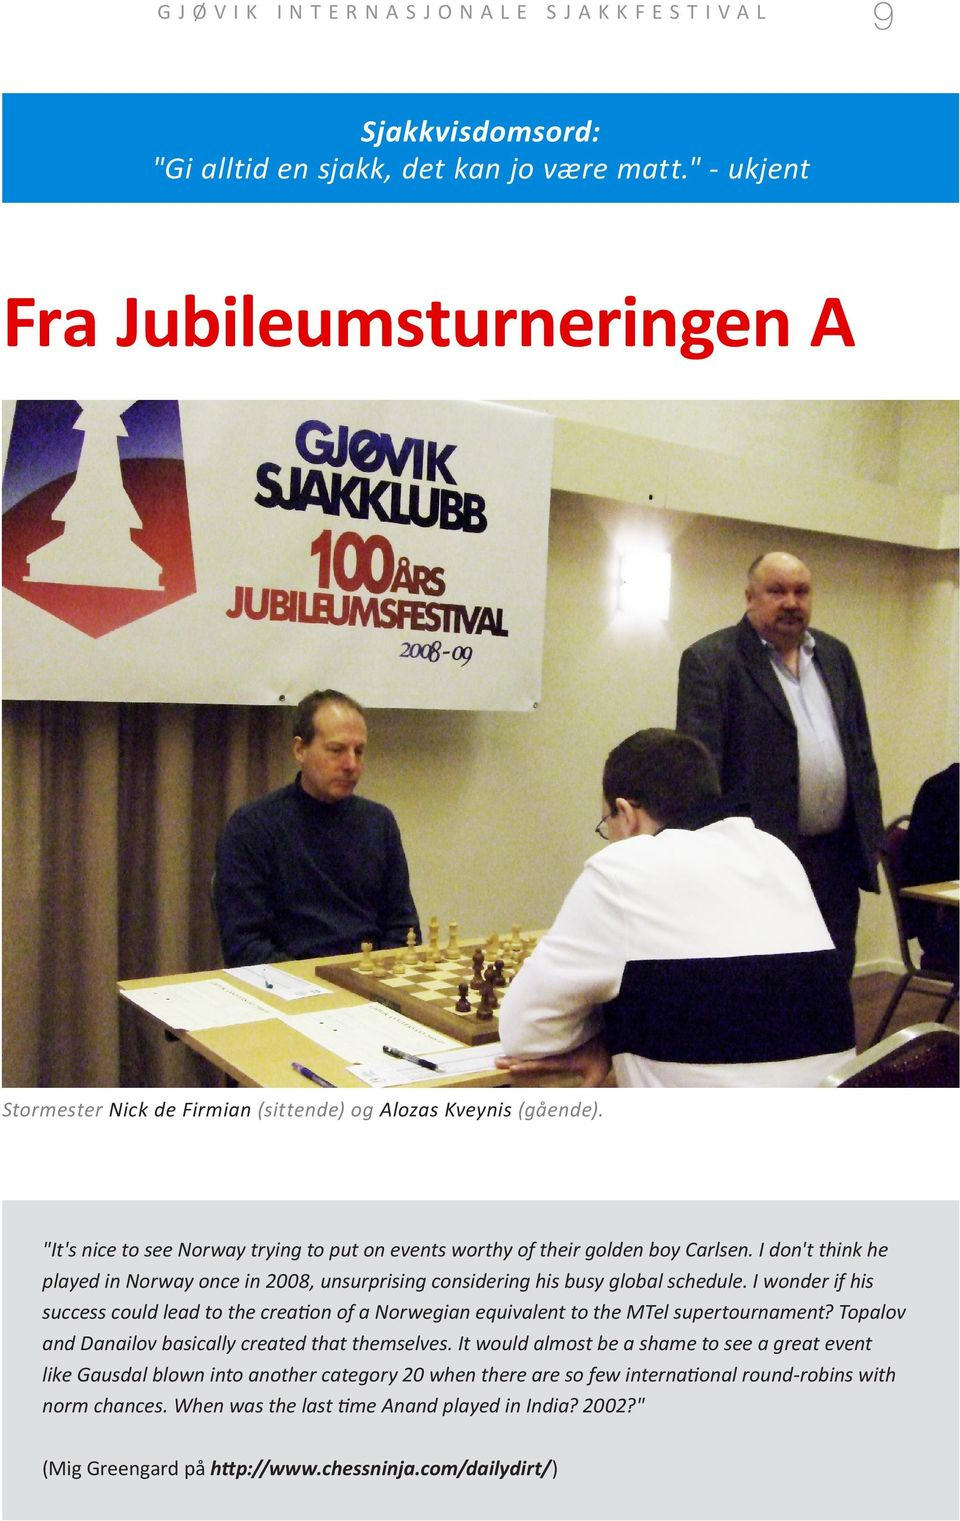 I wonder if his success could lead to the creation of a Norwegian equivalent to the MTel supertournament? Topalov and Danailov basically created that themselves.